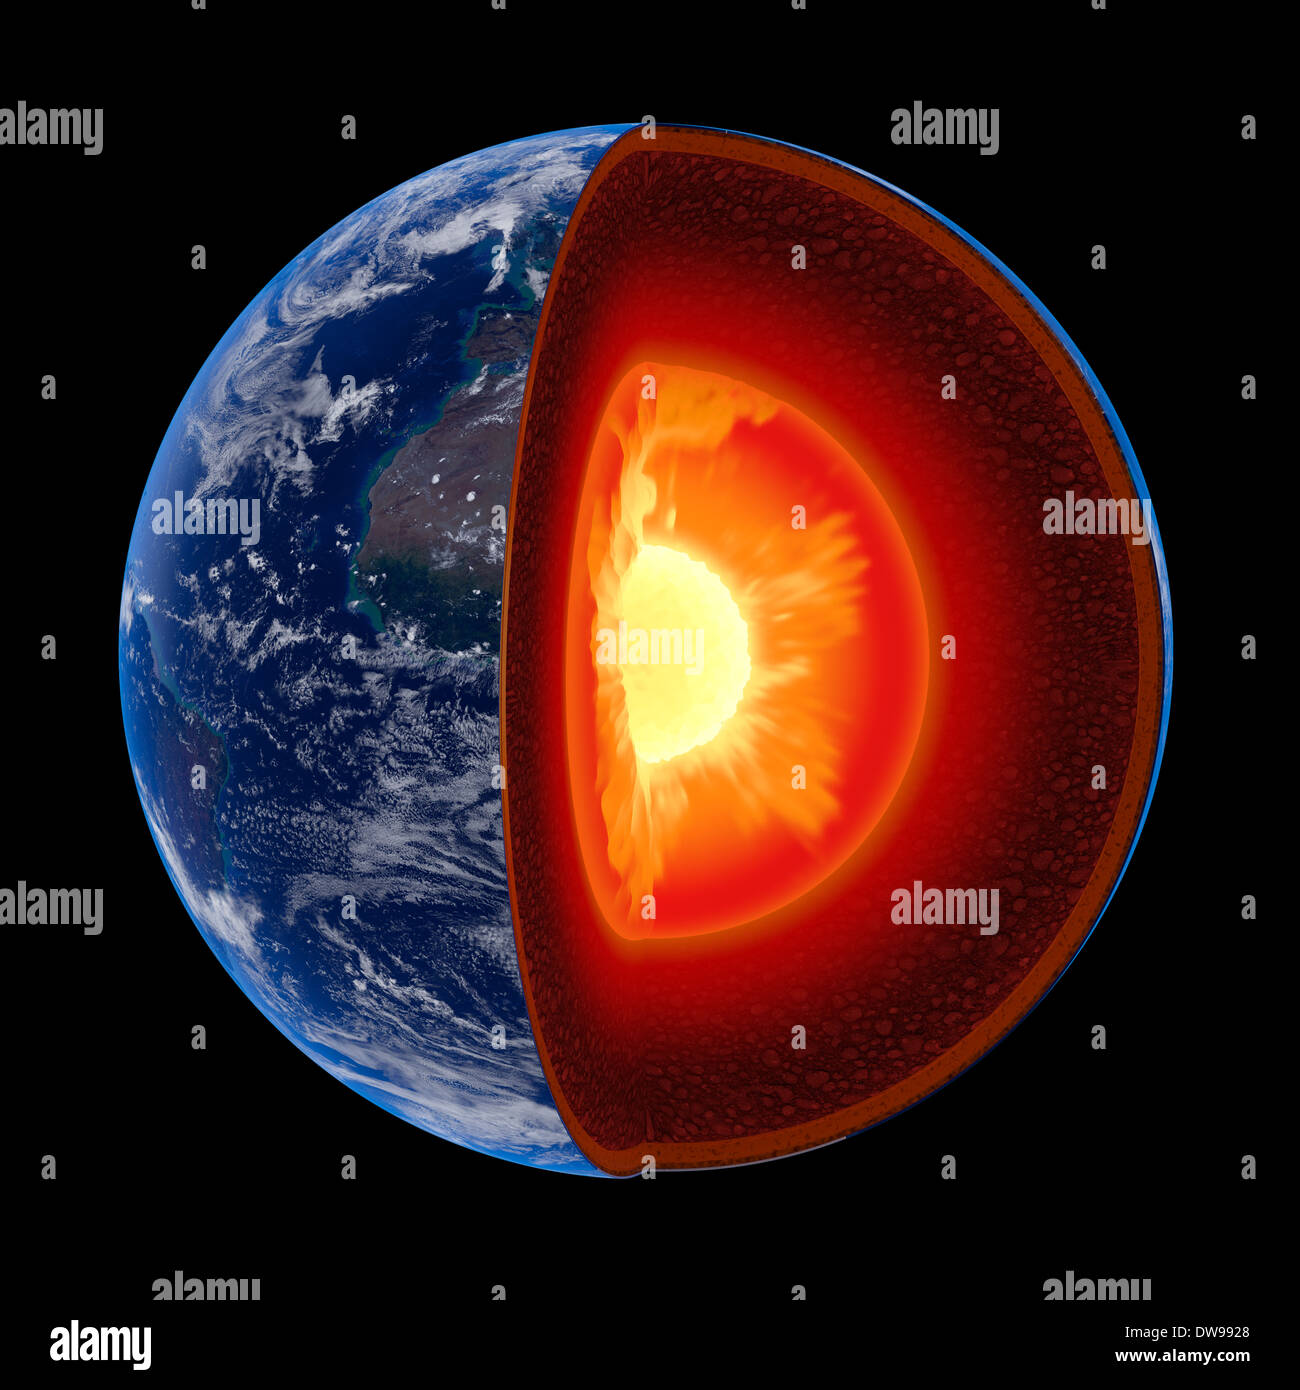 Earth core structure illustrated with geological layers according to scale - isolated on black (Texture maps from NASA) - Stock Image